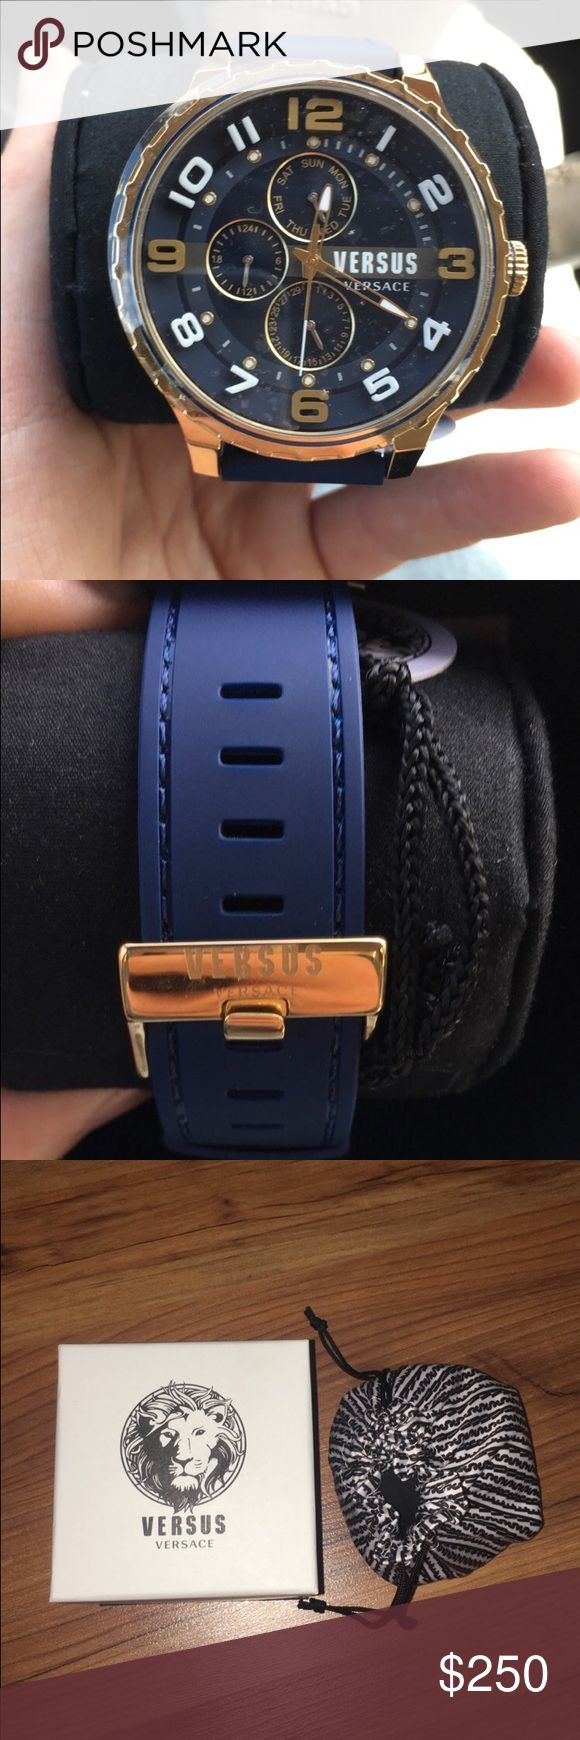 Men's Versus By Versace Gold/Navy Blue Watch * Brand New w/ original box * Comes w/ protective bag, box, and international warranty card * Retail Price: $395 Versus By Versace Accessories Watches